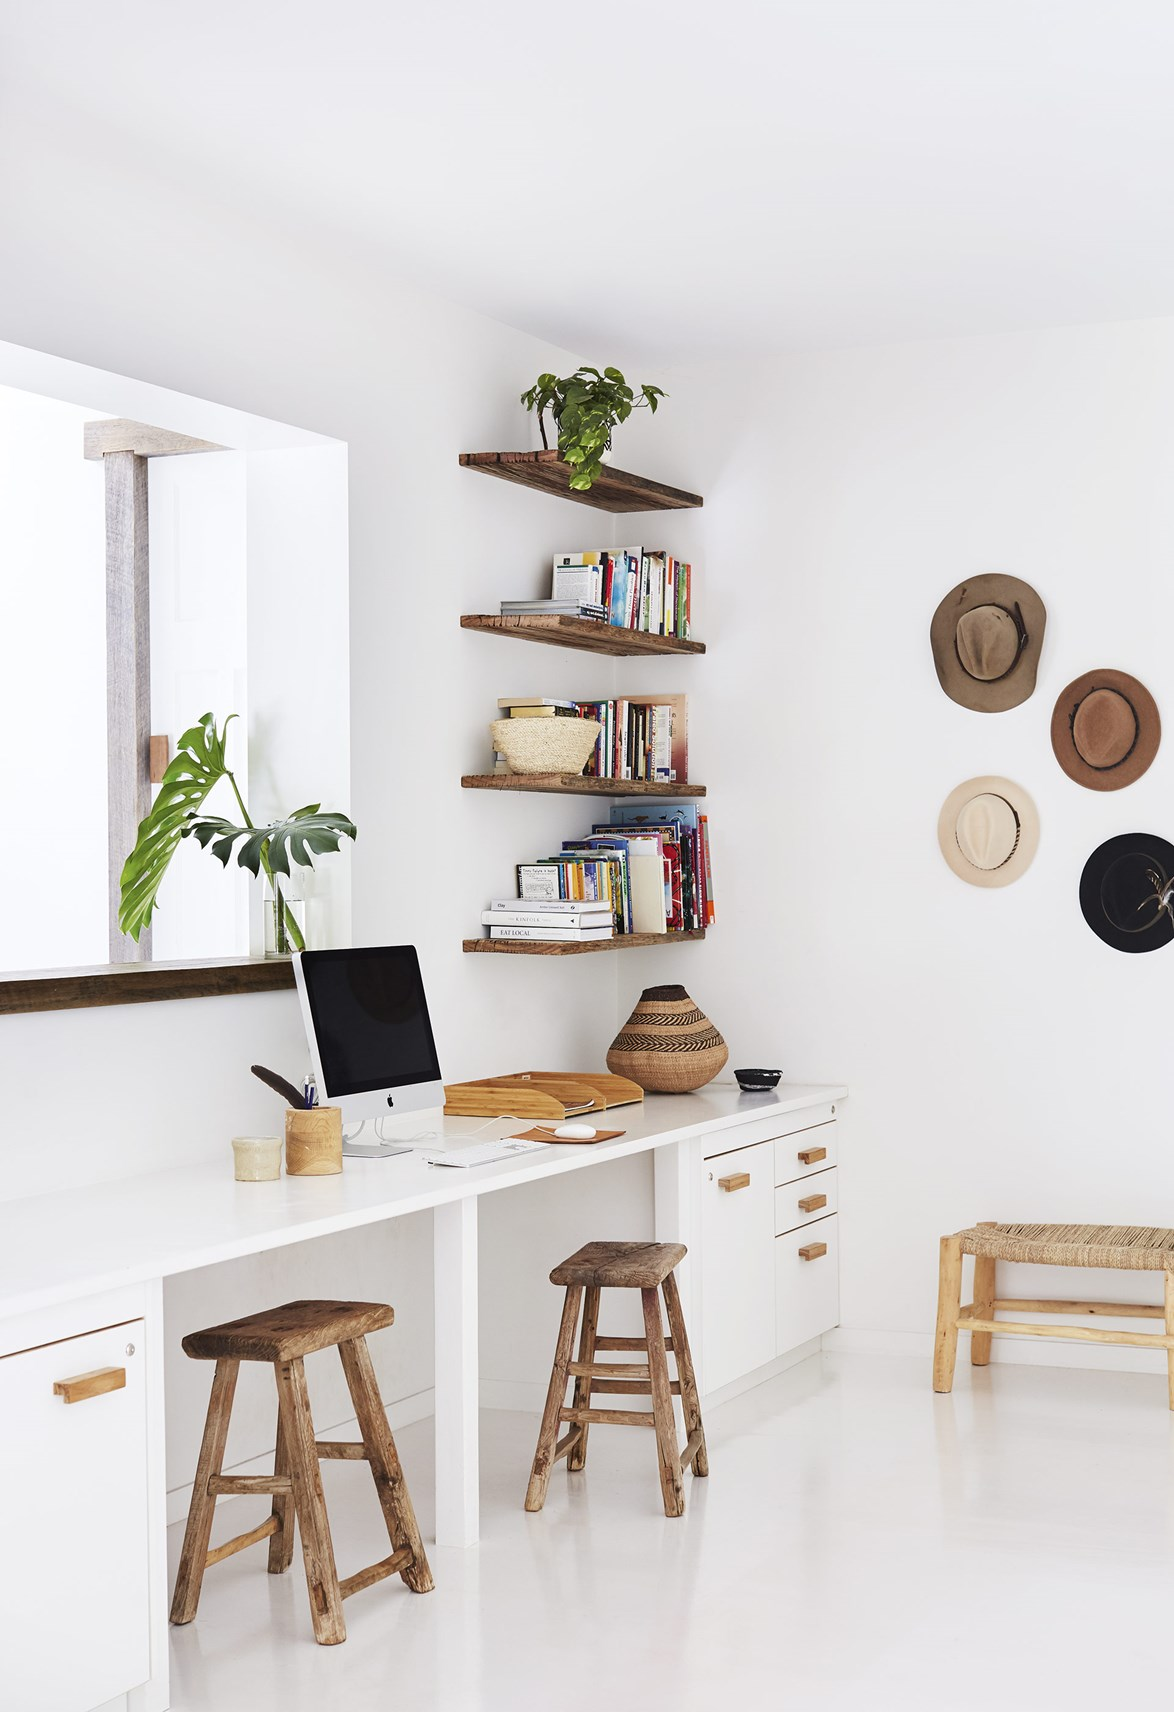 Built-in shelves are simple solution that doesn't require too much space for storage of office books and knick-knacks, and they also function as simple display spaces.